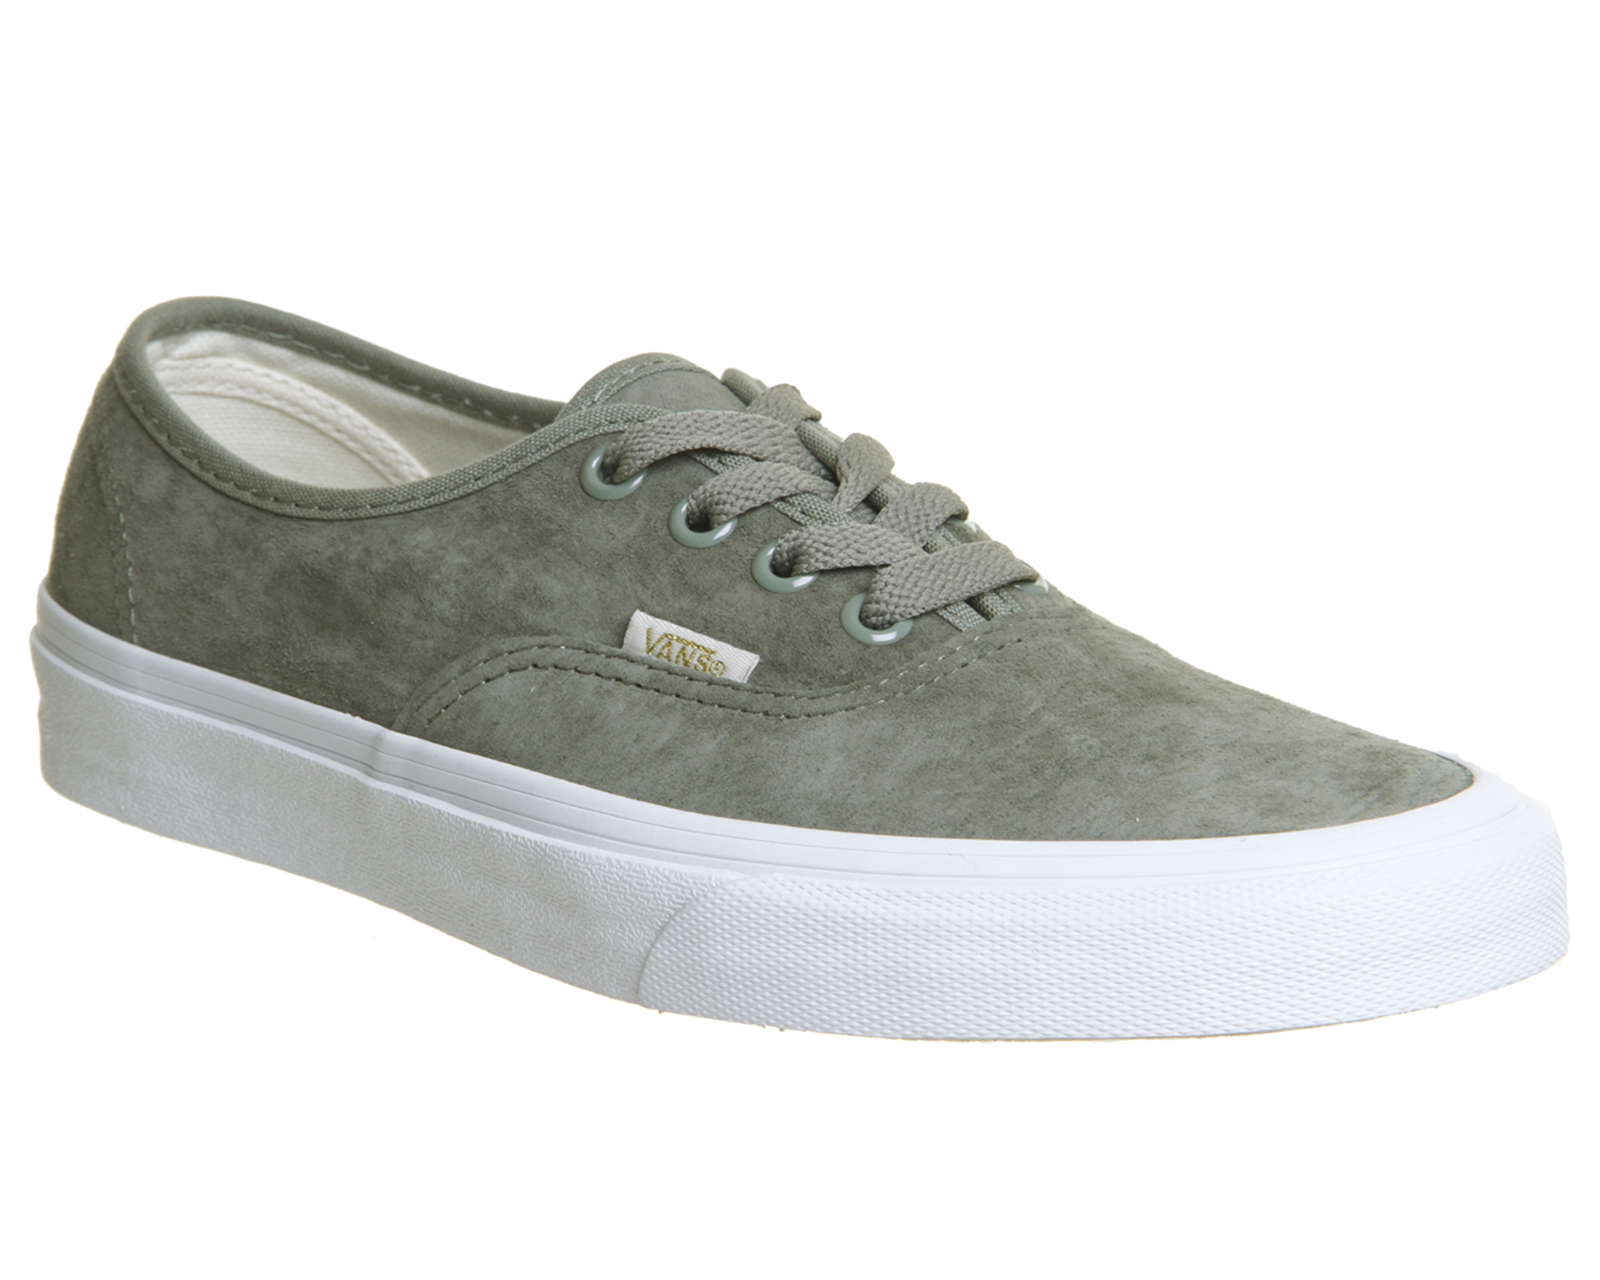 7efd0b9f7ca Sentinel Womens Vans Authentic Trainers Vetiver Eggnog True White Exclusive  Trainers Shoe